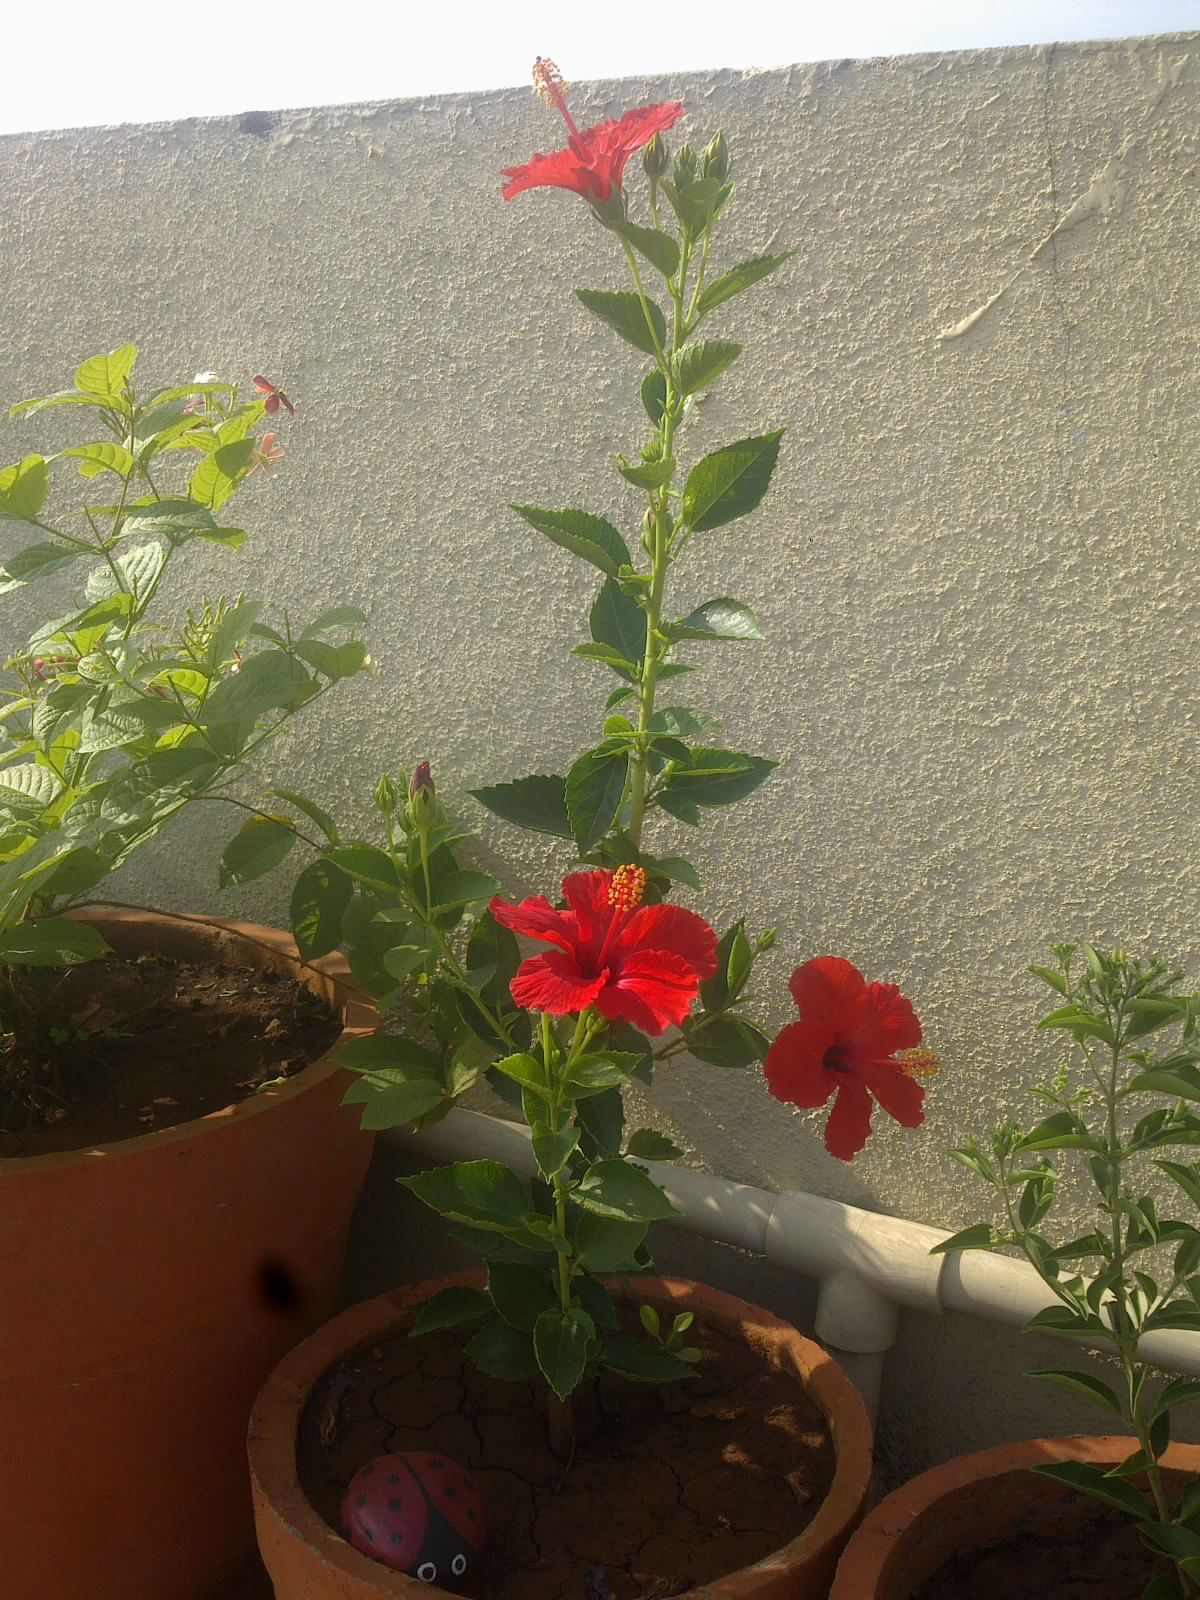 Plants growing in my potted garden june 2015 happy gardening to all izmirmasajfo Image collections